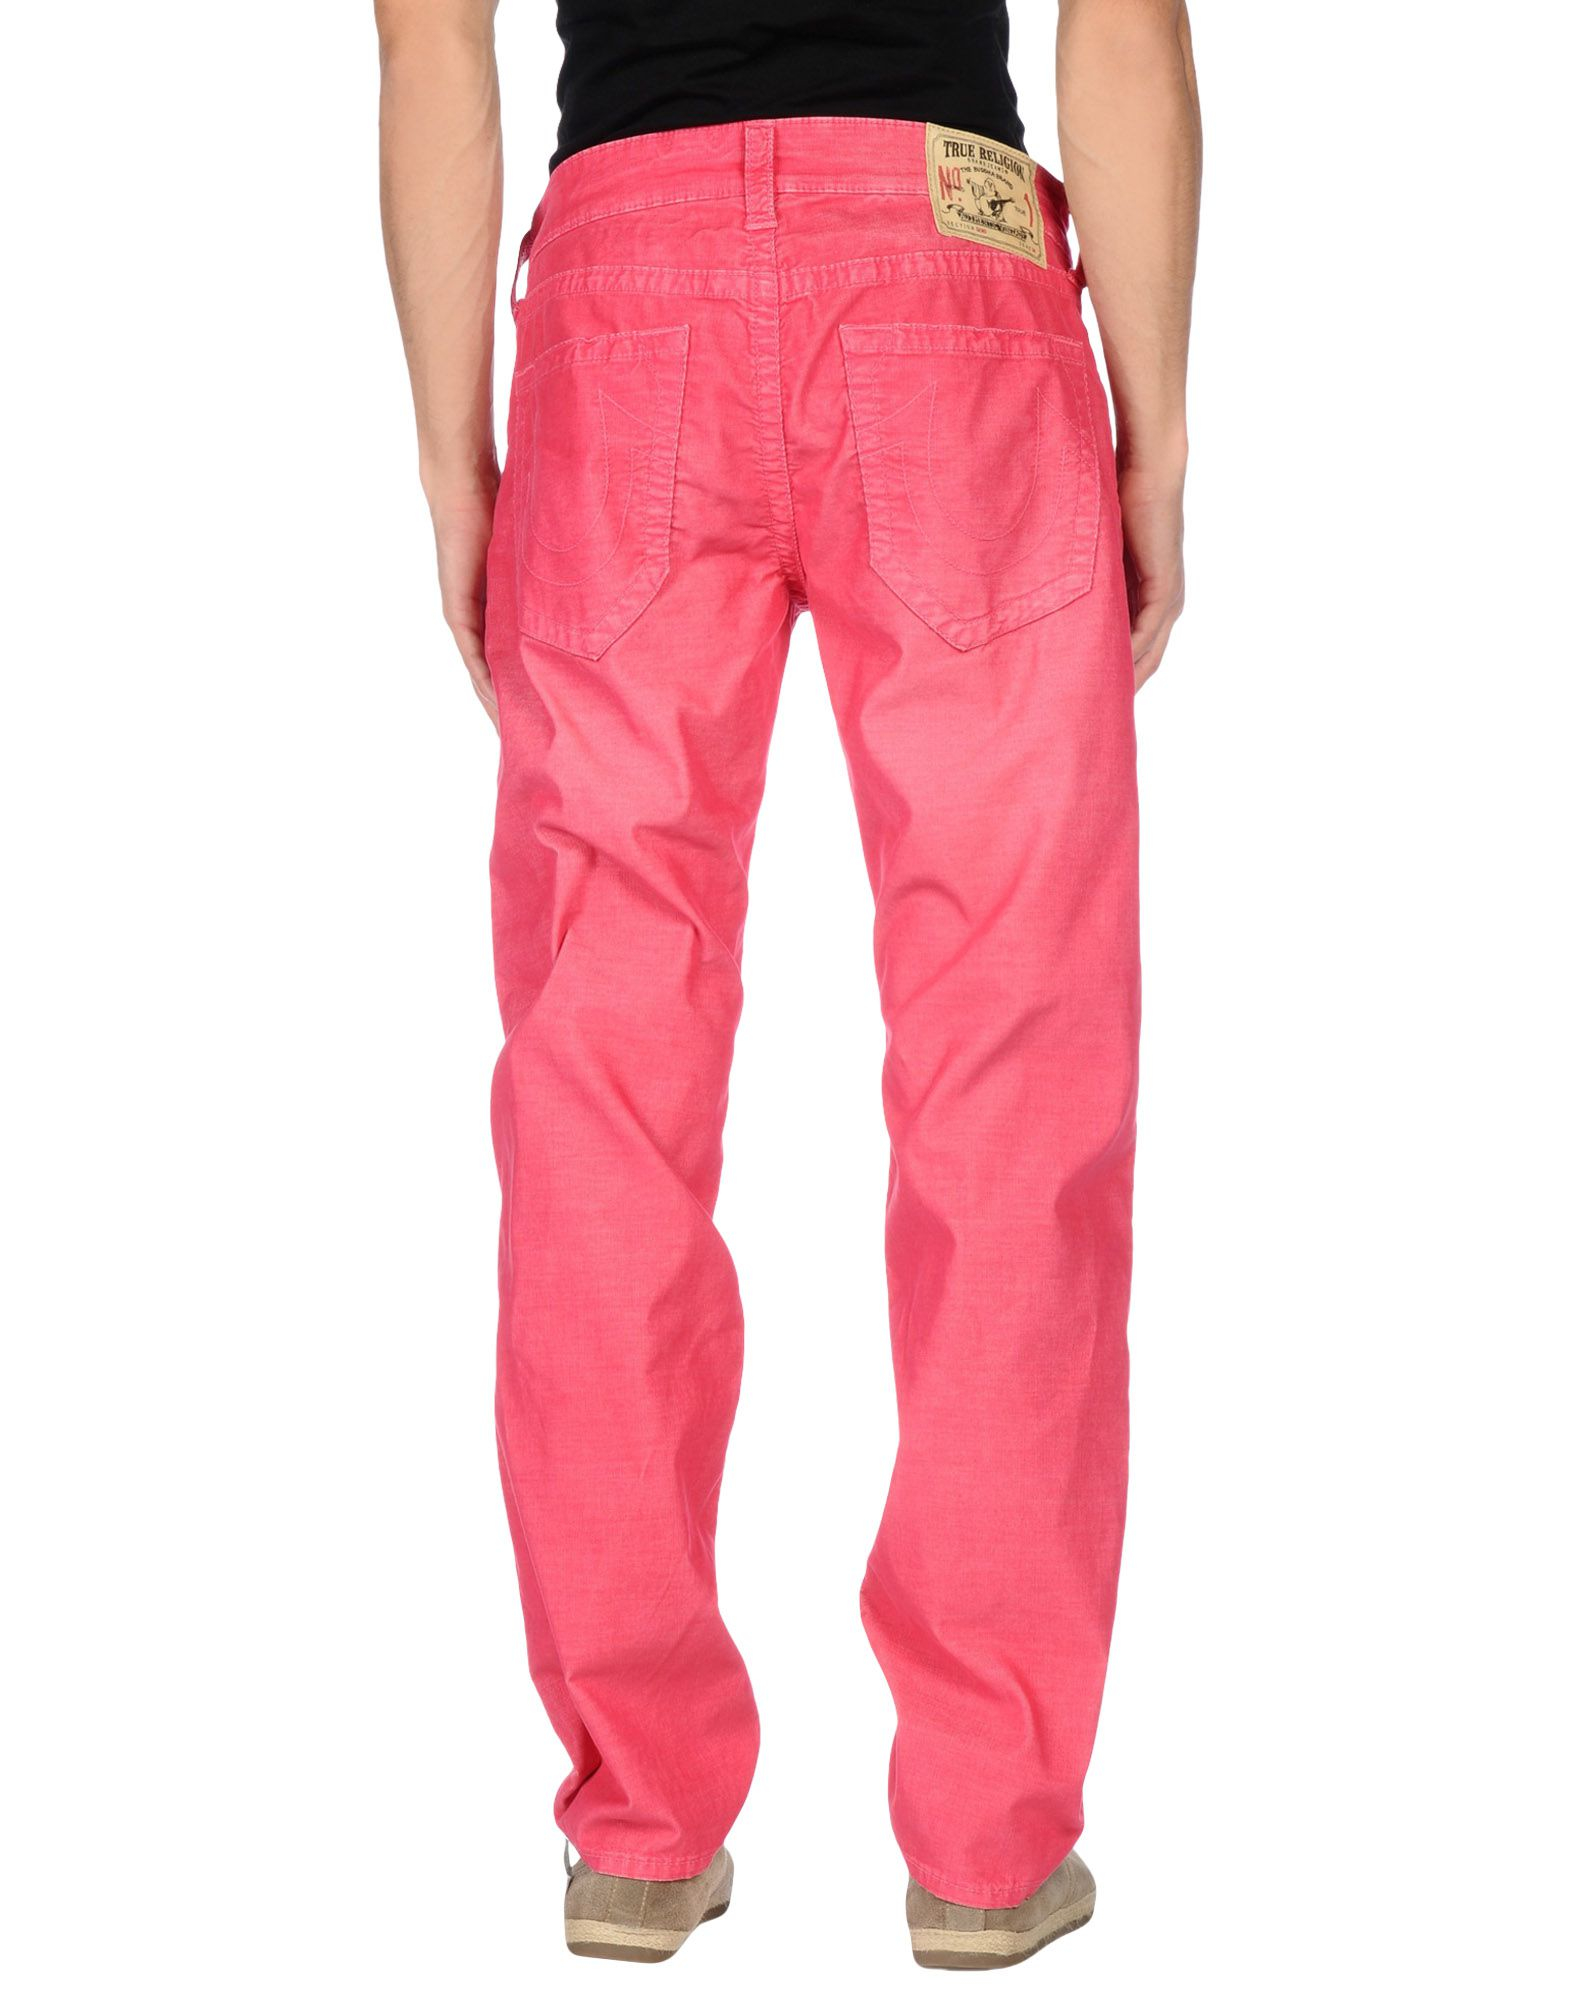 Cheap Footlocker Finishline TROUSERS - Casual trousers True Religion Outlet Best Place Visa Payment For Sale Classic Online EmqnVHddYn